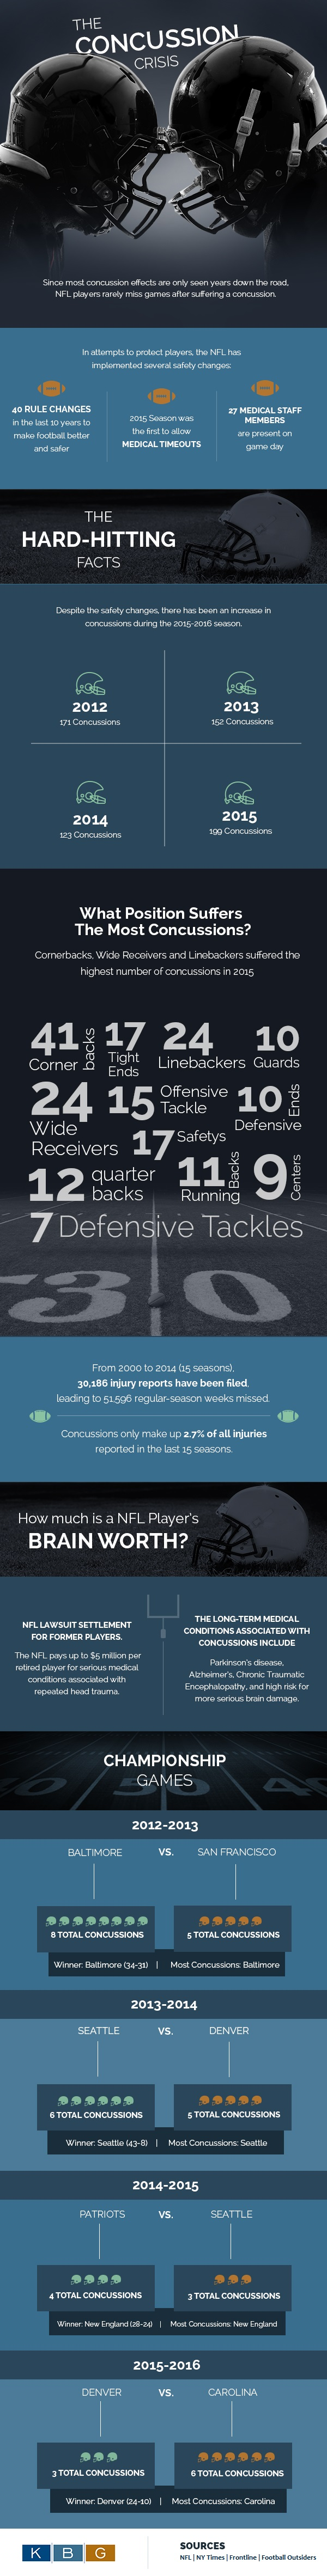 Concussion infographic - NFL concussion statistics compared to other NFL injuries